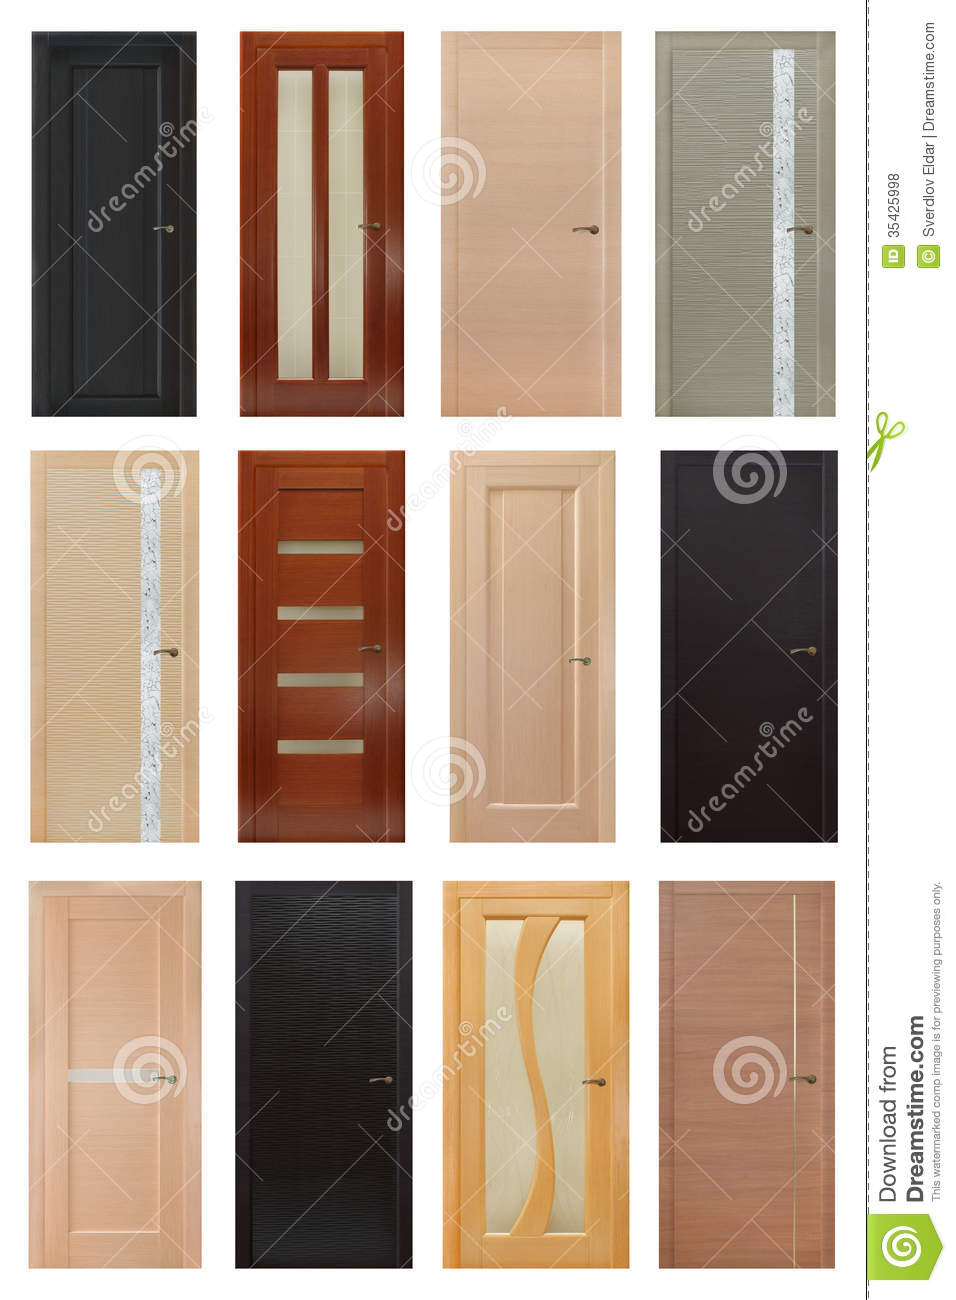 Set of 12 interior wooden doors stock photo image of - Puertas de madera interiores modernas ...